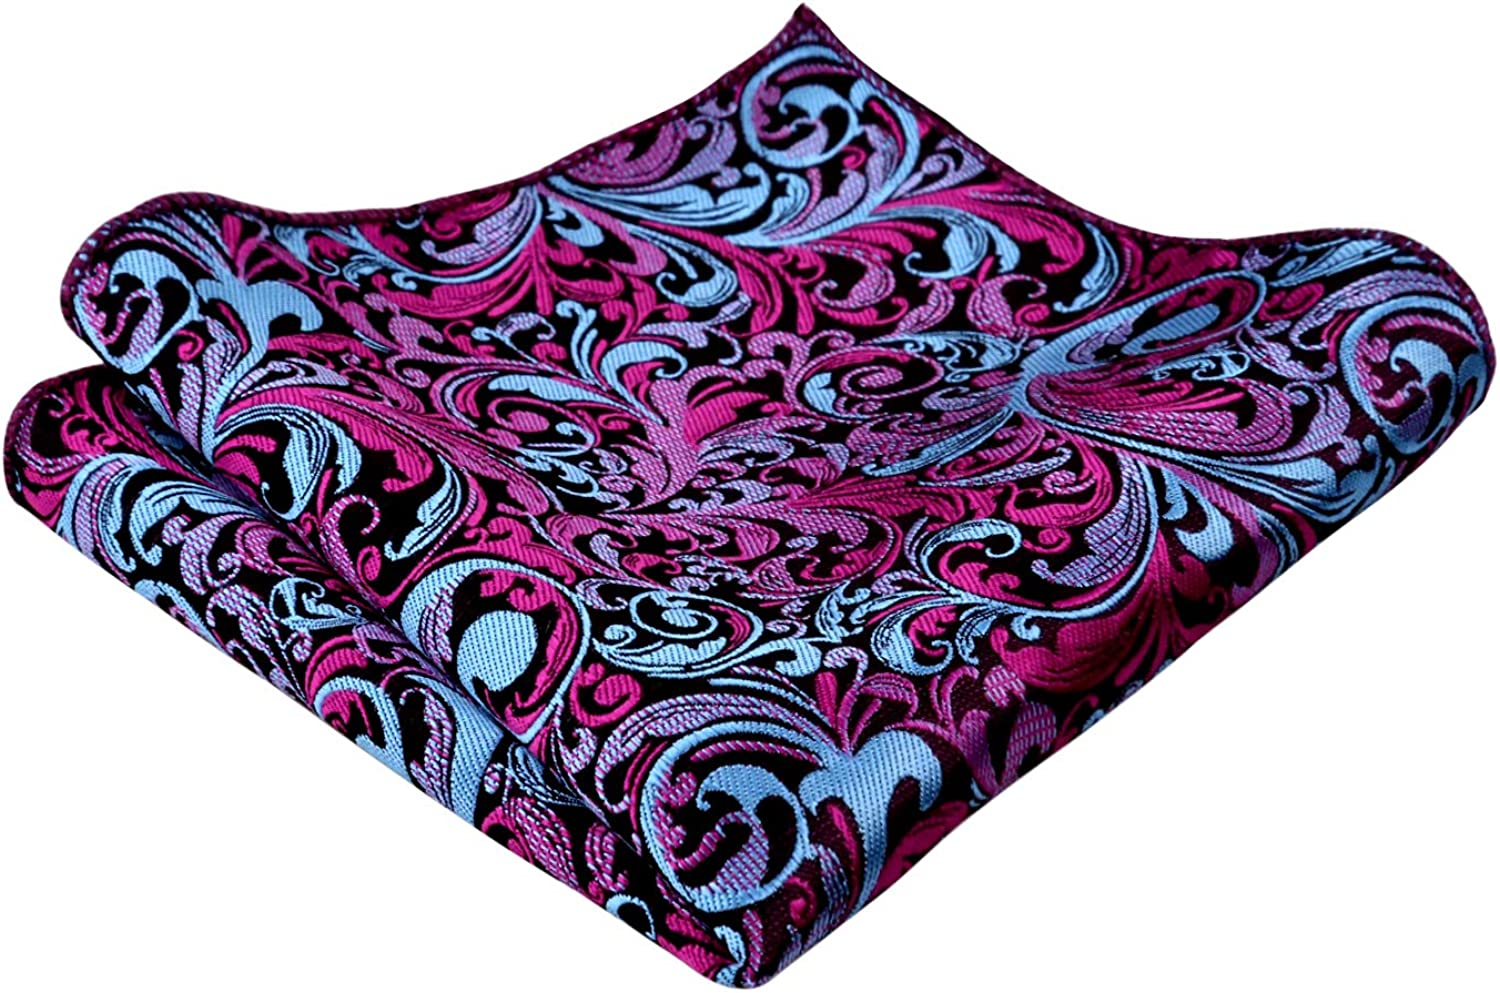 Alizeal Mens Paisley Necktie with Pocket Square Set